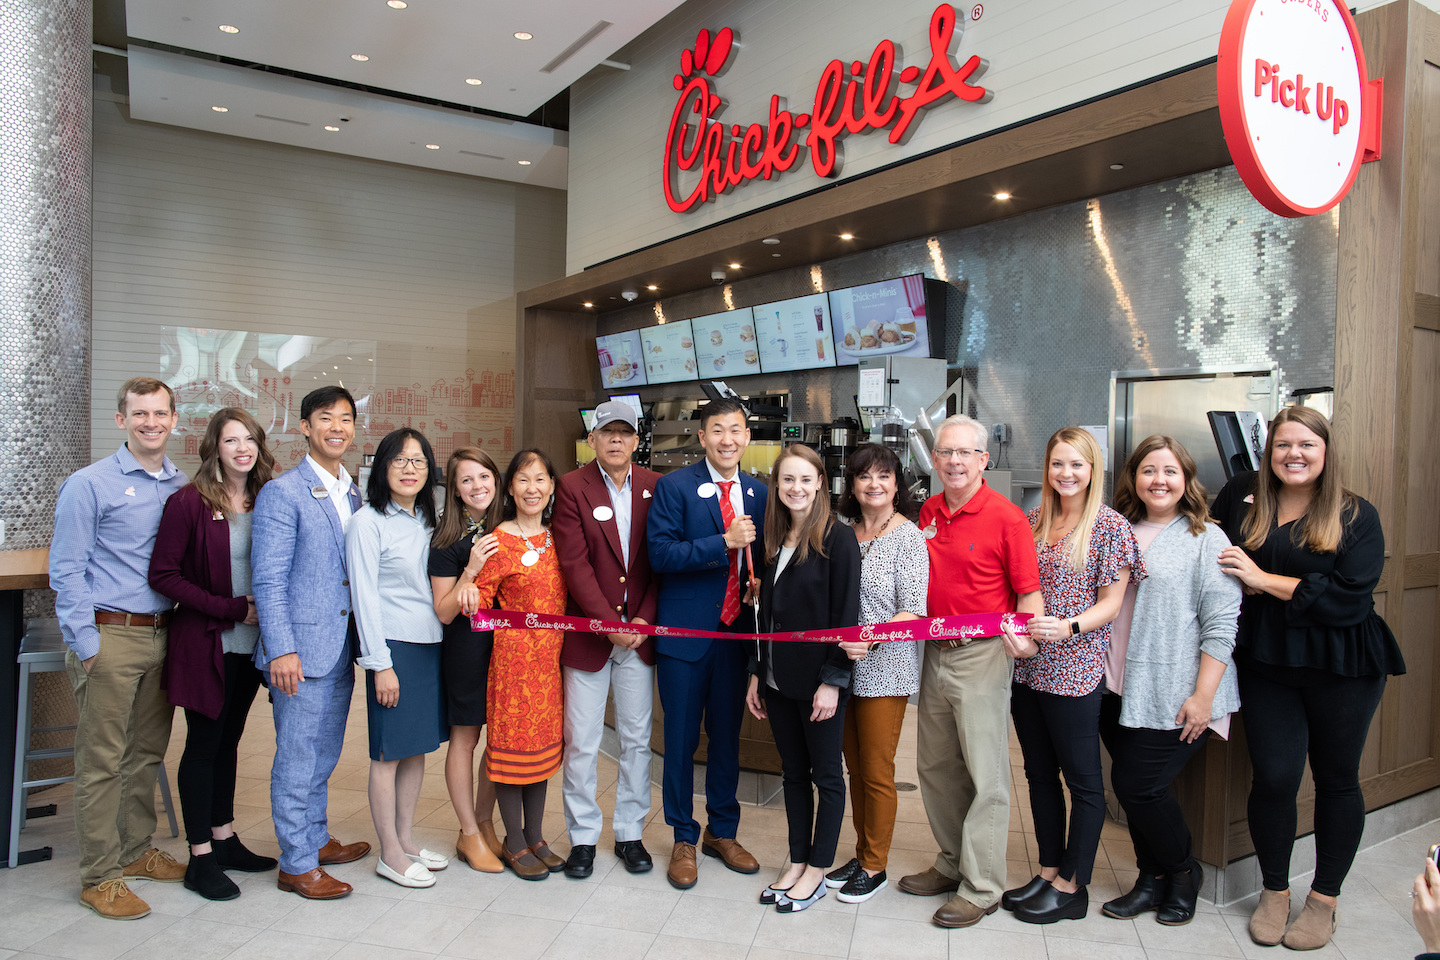 Chick-fil-A Toronto Team standing in front of the restaurant at the Grand Opening last year